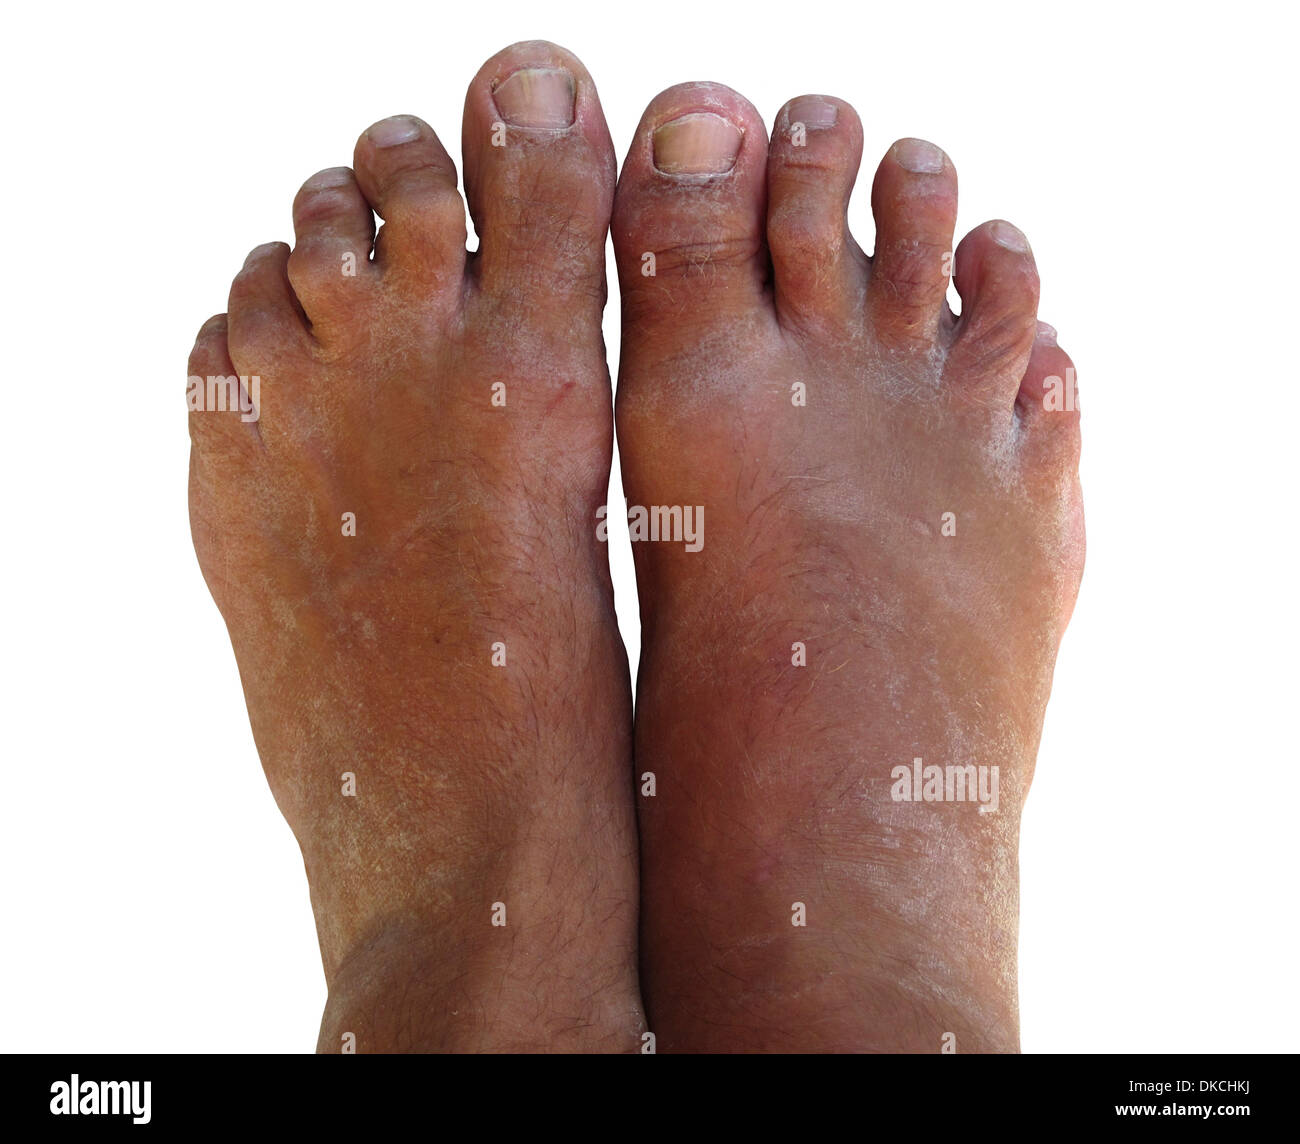 A pair of bare feet looking worse for wear. They are dry, scaly, and just ugly. - Stock Image